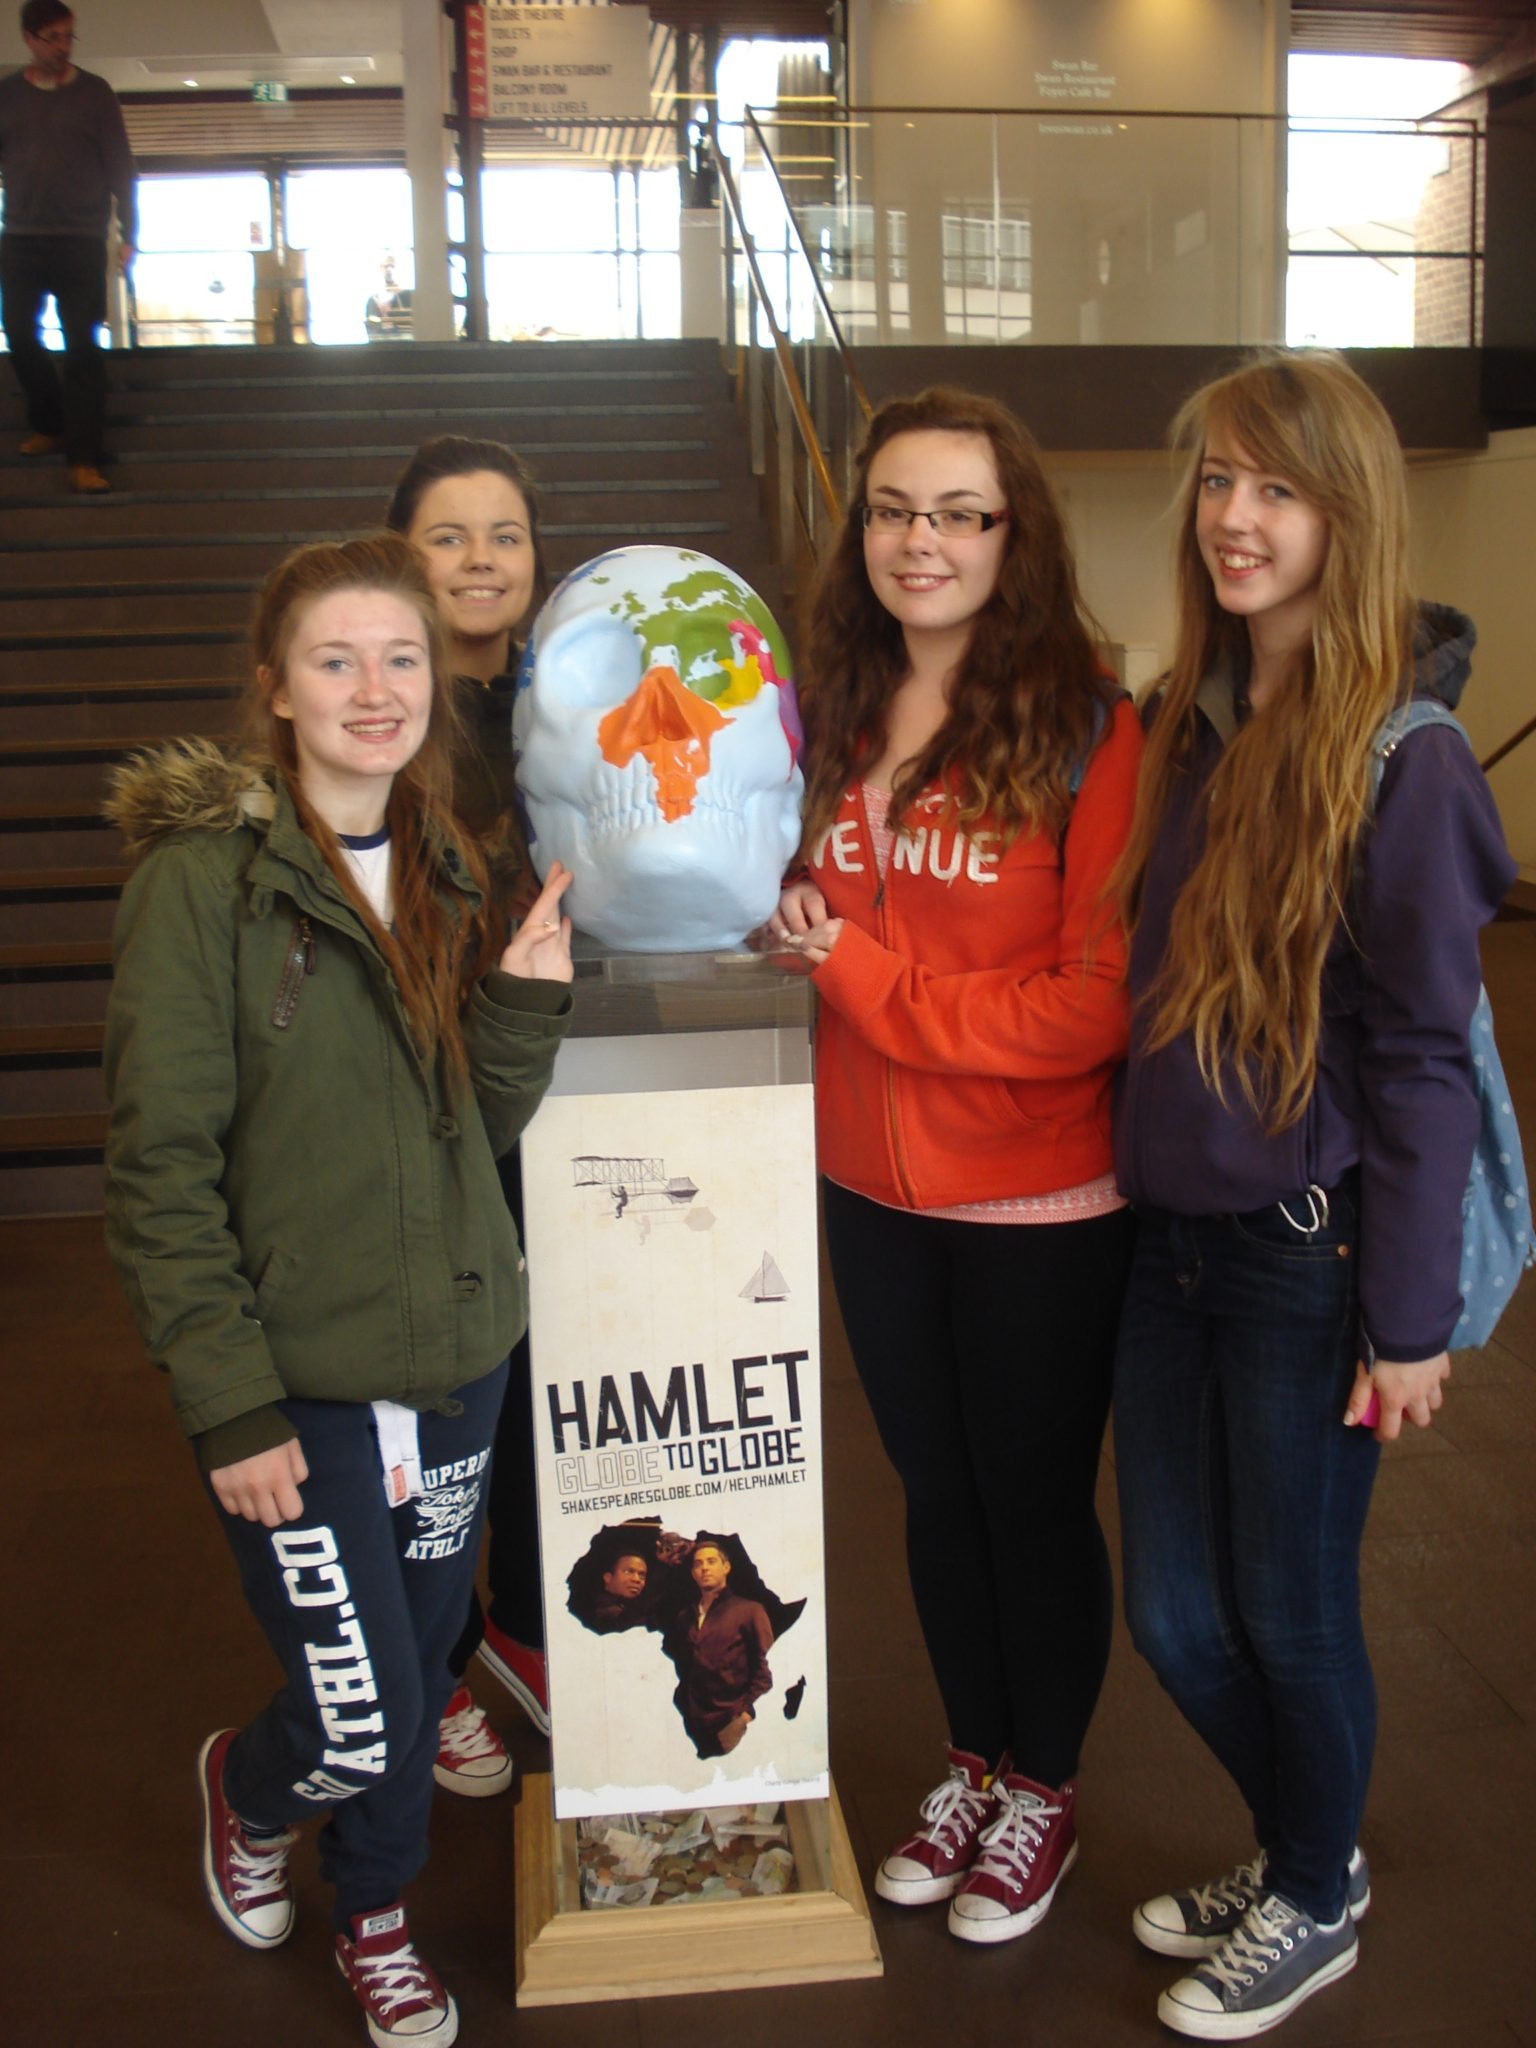 Sara Flatley, Lauren Moloney, Chloe Collins and Orla Wren from Desmond College at Shakespeares the Globe Theatre while on their school trip to London England April 2015